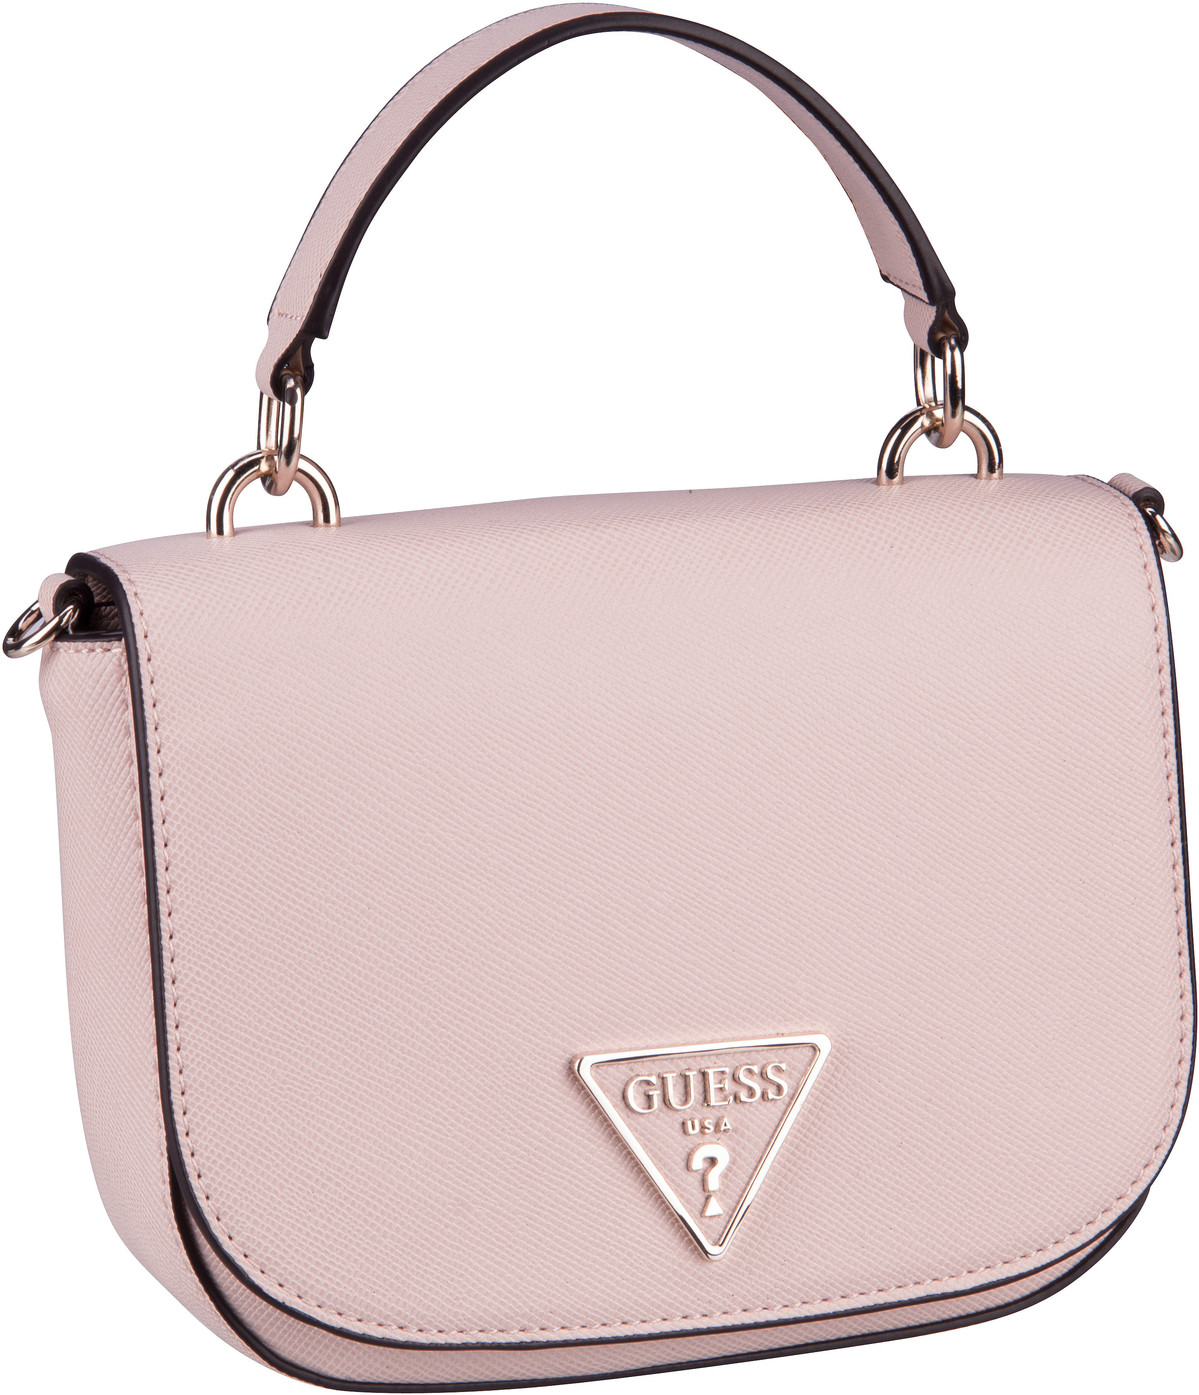 Handtasche Carys Mini Top Handle Flap Blush